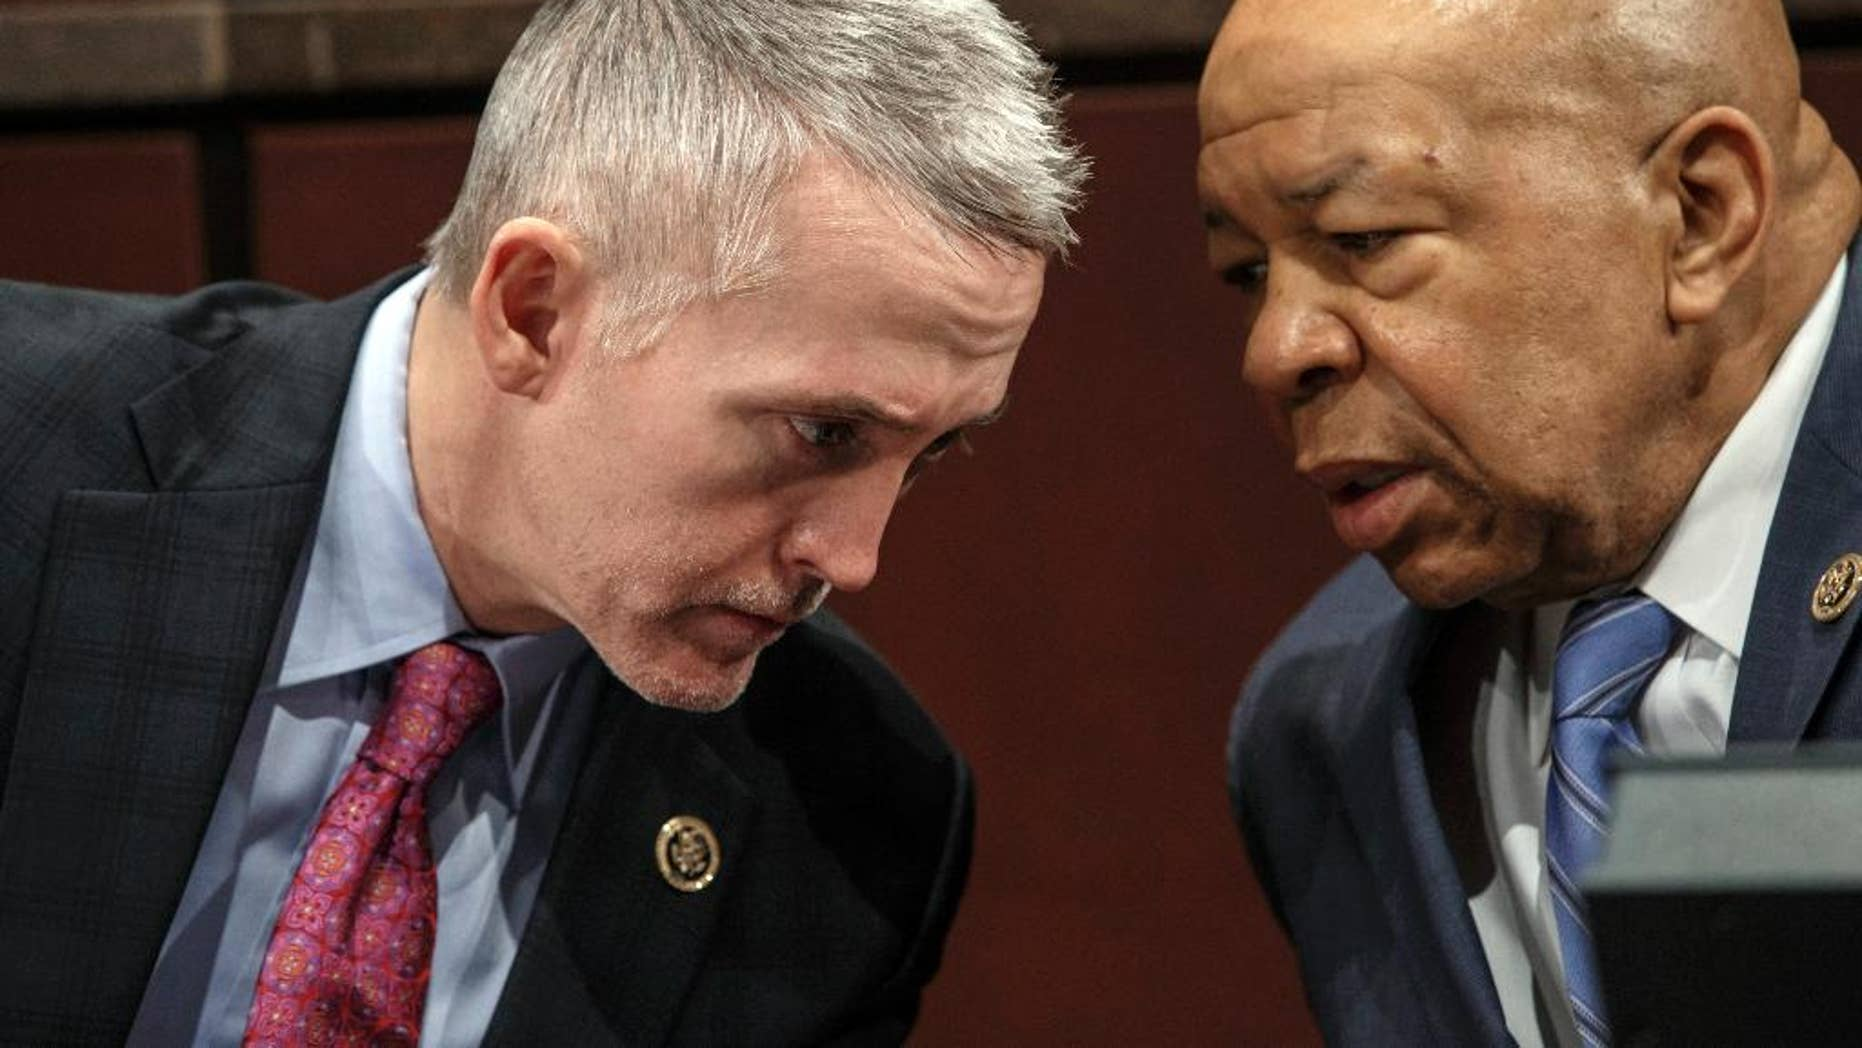 "FILE - In this Jan. 27, 2015, file photo, House Benghazi Committee Chairman Rep. Trey Gowdy, R-S.C., left, confers with the committee's ranking member Rep. Elijah Cummings, D-Md., during the committee's hearing on Capitol Hill in Washington. The committee has missed a self-imposed deadline to issue a report ""before summer,"" the latest setback for a probe that has gone on for more than two years and drawn scorn from Democrats who say the primary goal of the Republican-led investigation is to undermine Hillary Clinton's presidential bid.(AP Photo/J. Scott Applewhite, File)"